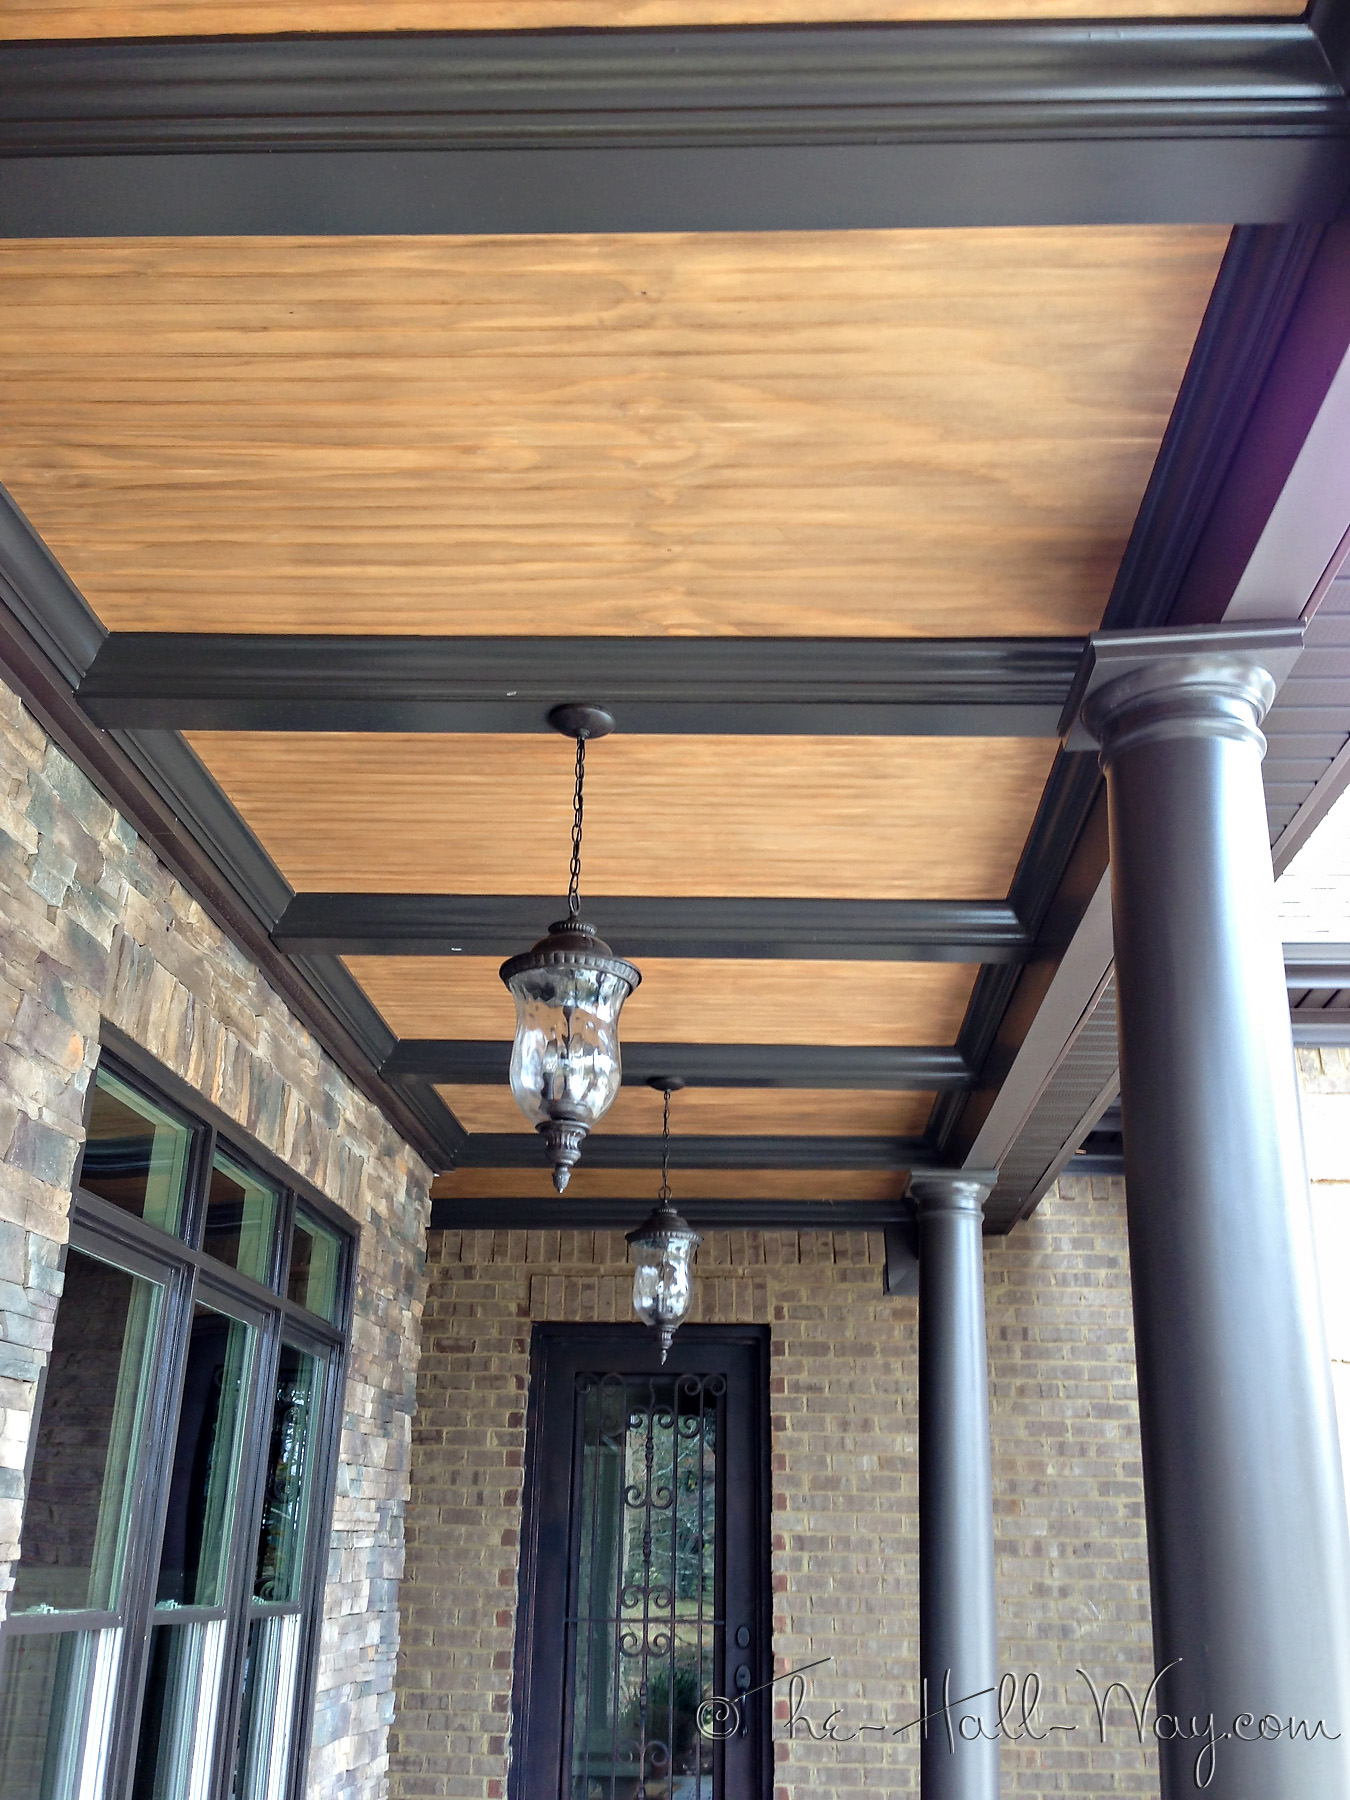 Brick and stone the hall way for Balcony ceiling design